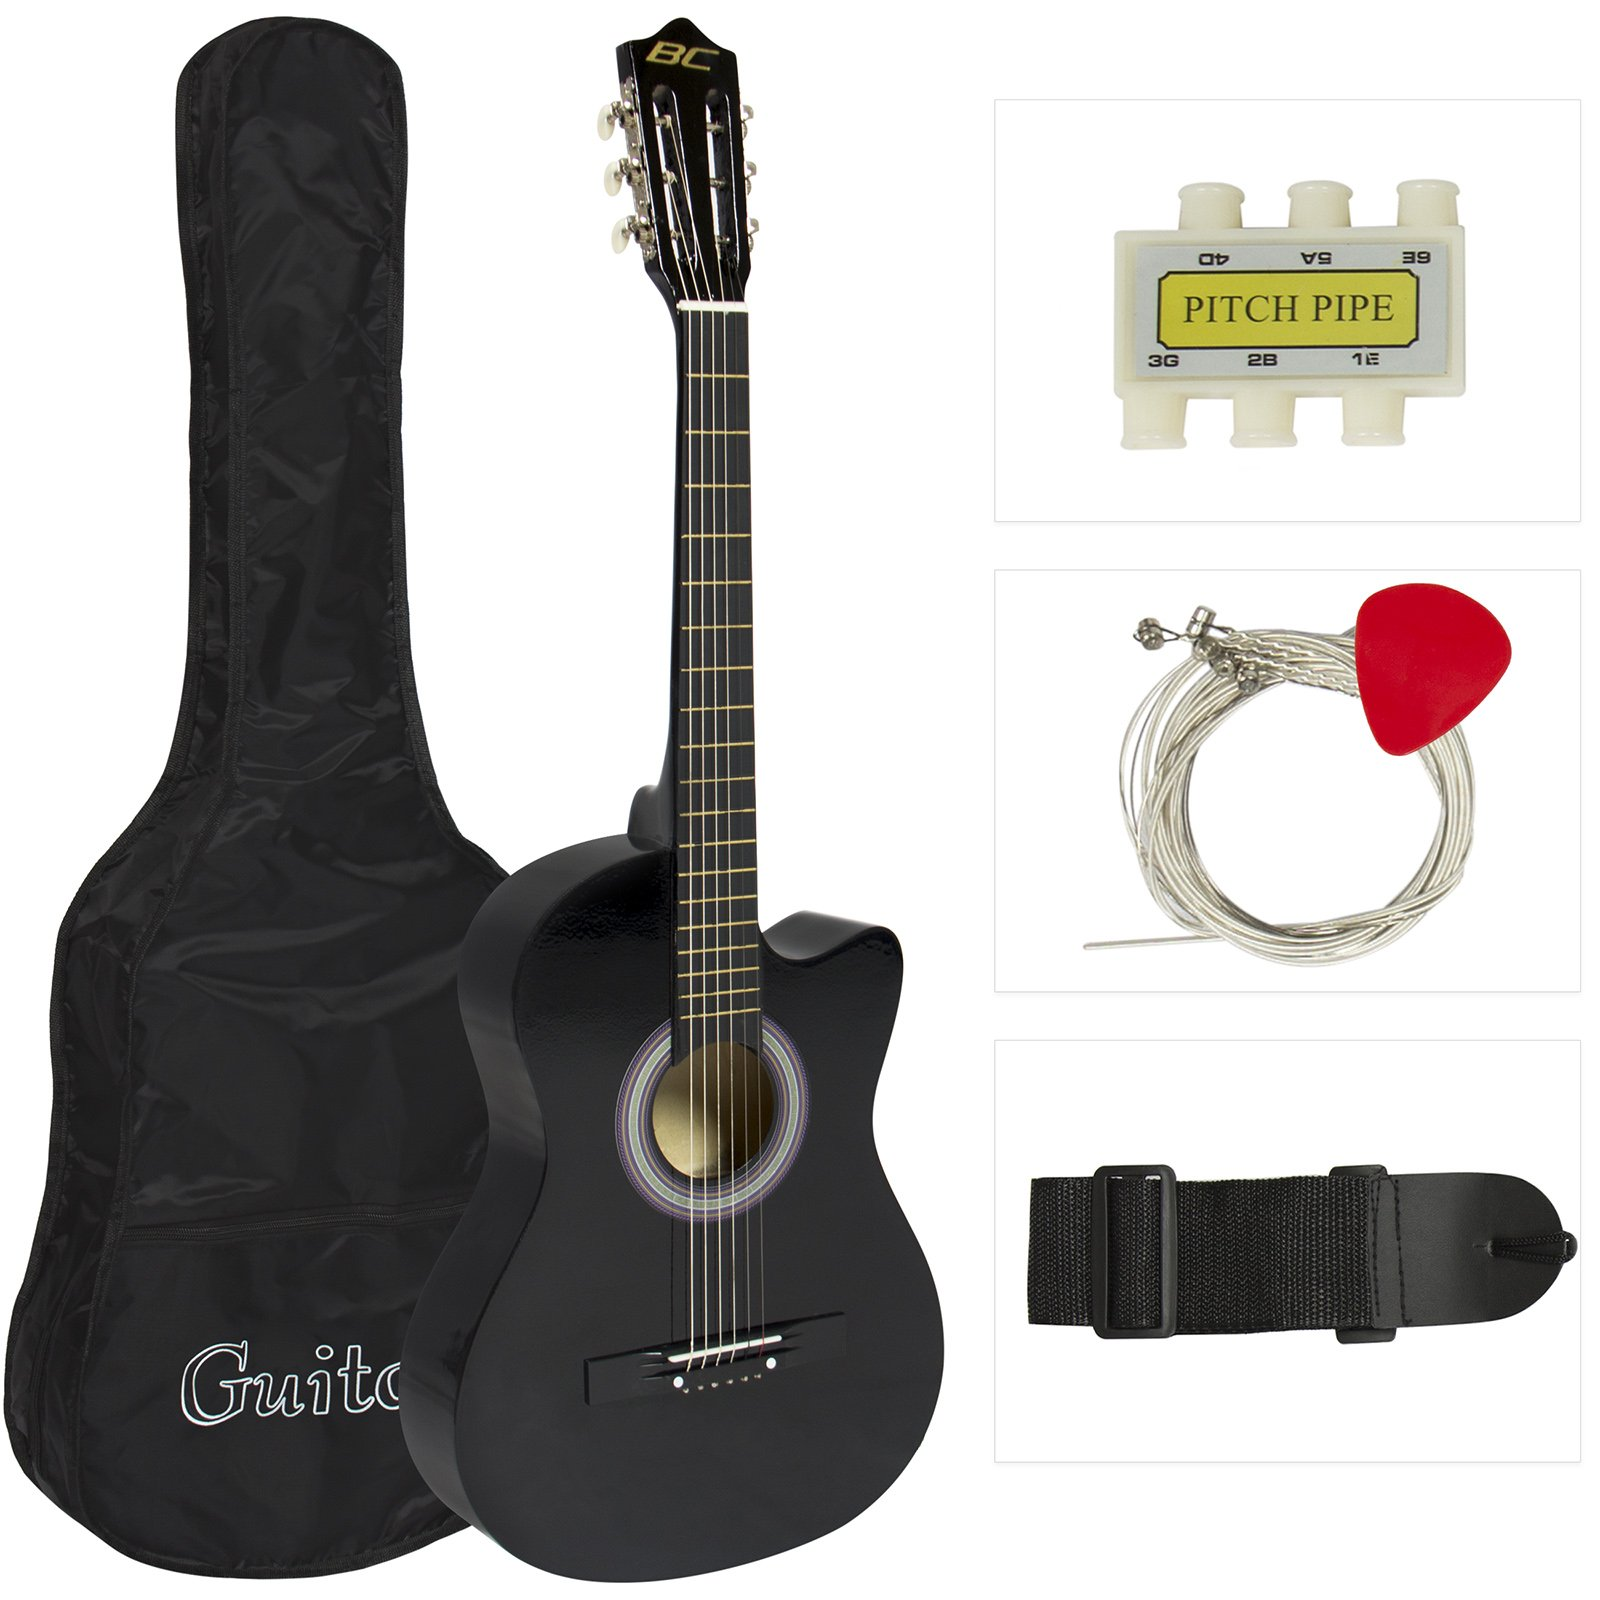 38in Beginner Acoustic Cutaway Guitar Set w/Extra Strings, Case, Strap, Tuner, and Pick - Black by Aromzen